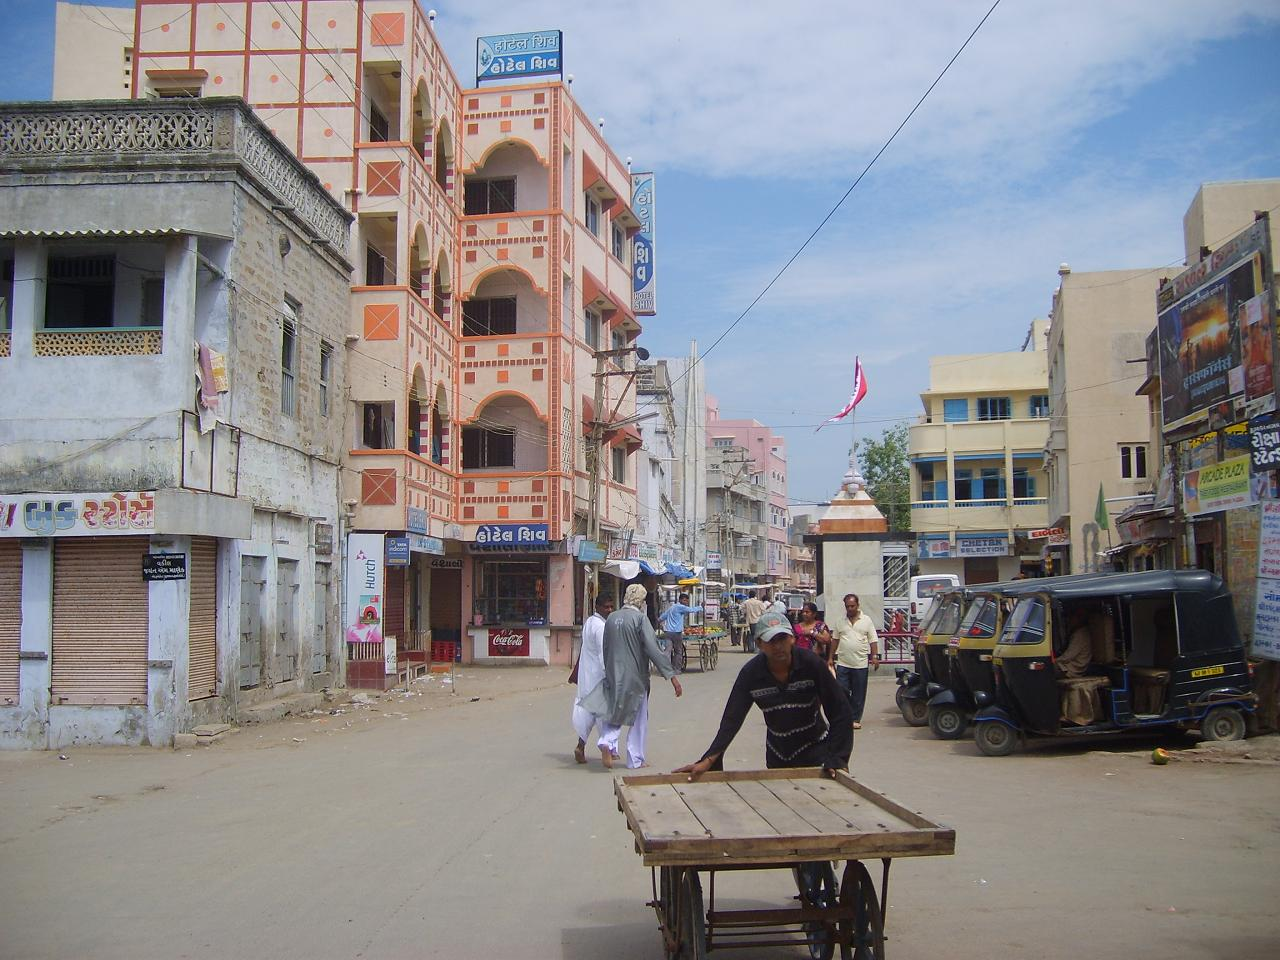 Dwarka India  city photos gallery : Dwarka – photo gallery, photos of India